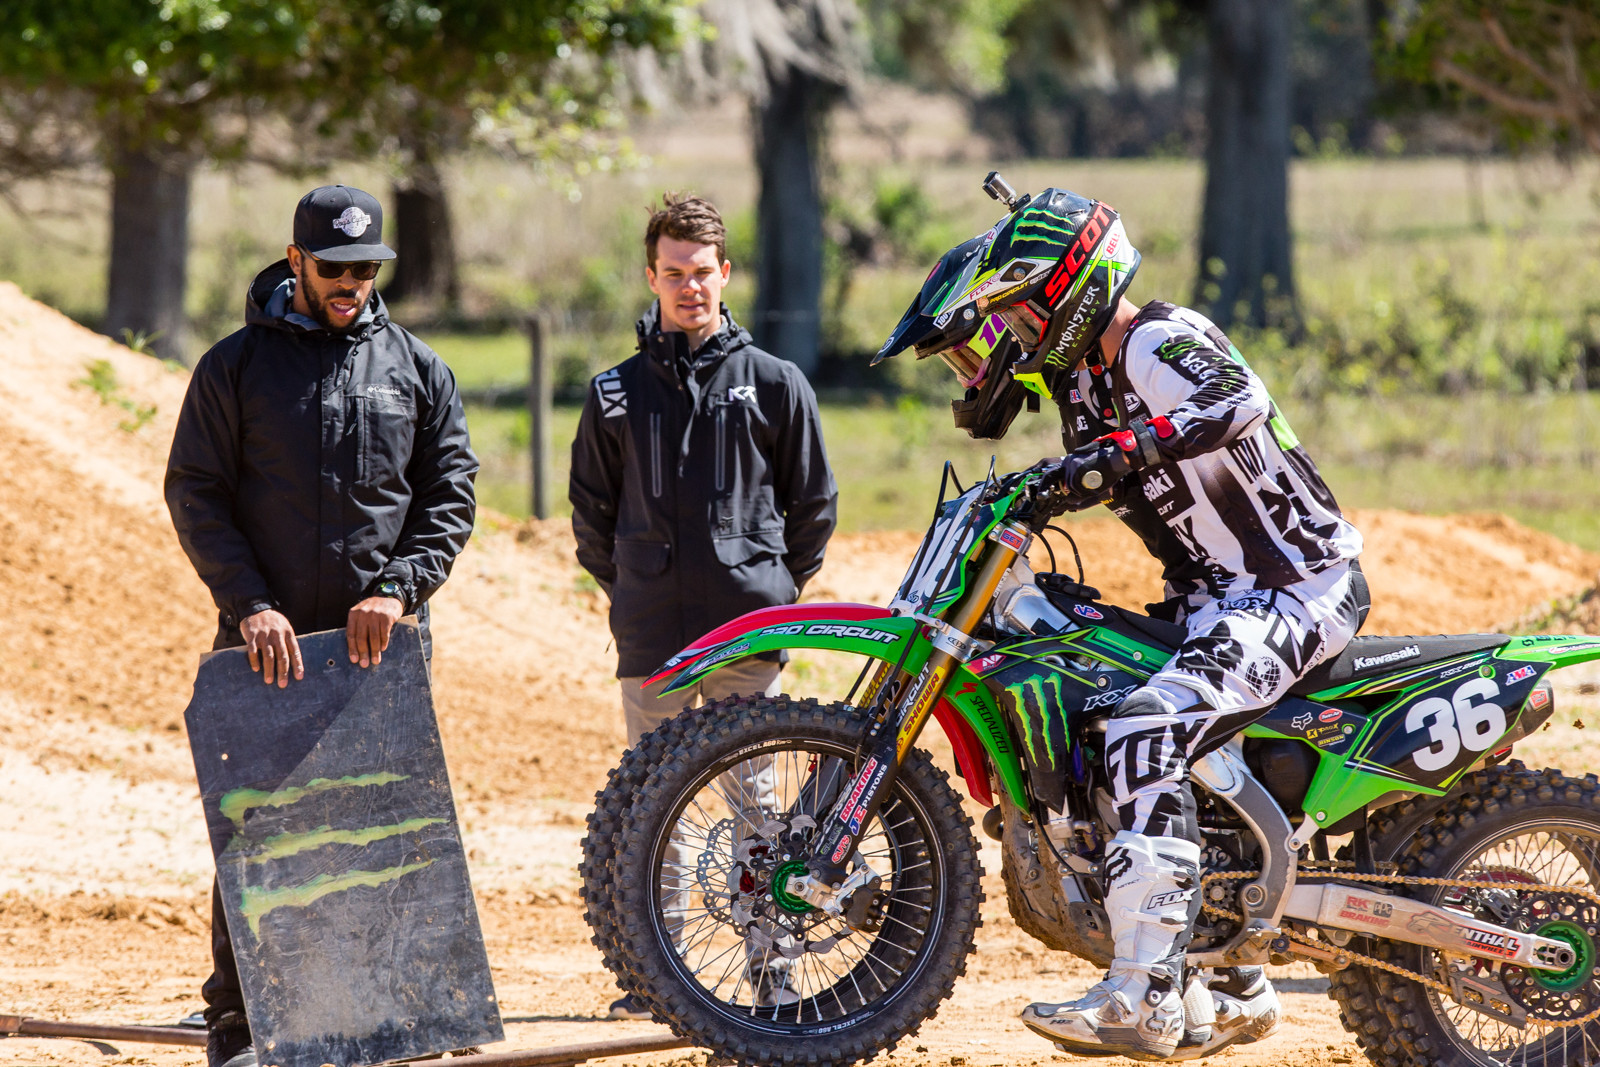 Starts at The Nest - Photo Gallery: The Nest, Goat Farm, and MTF - Motocross Pictures - Vital MX